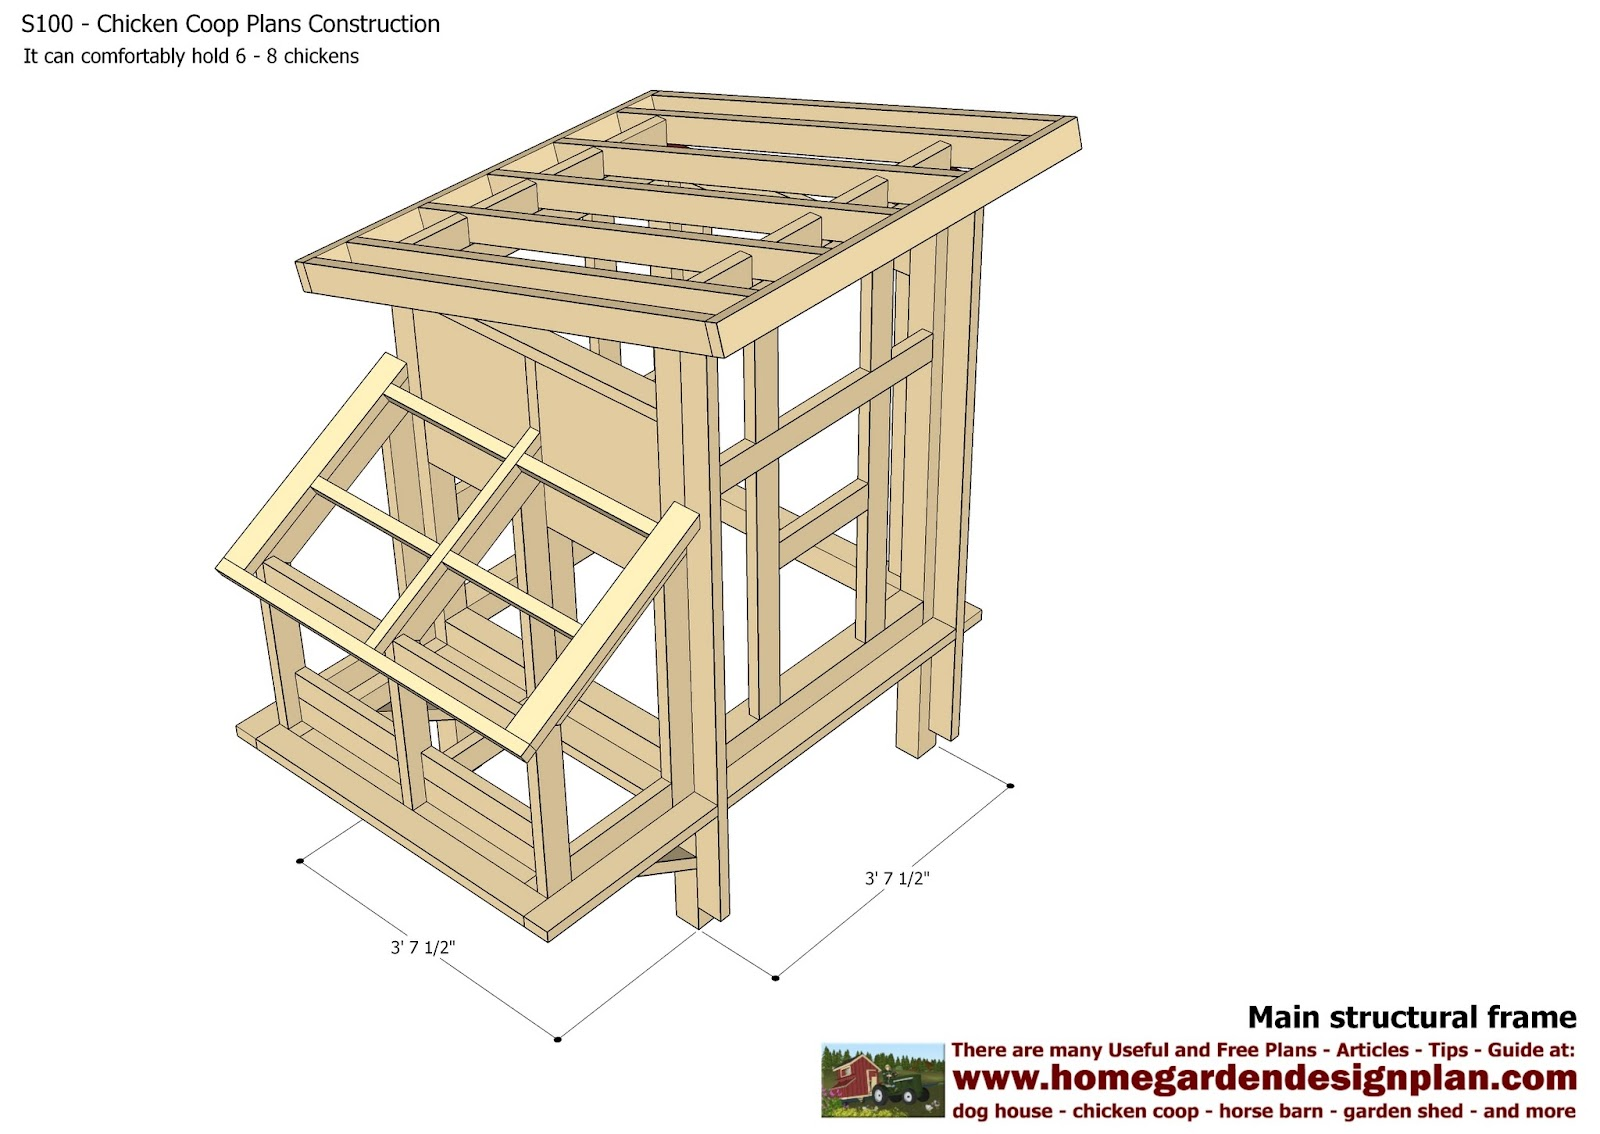 Gellencoop ideas how to build hen house plans for Plans for a chicken coop for 12 chickens